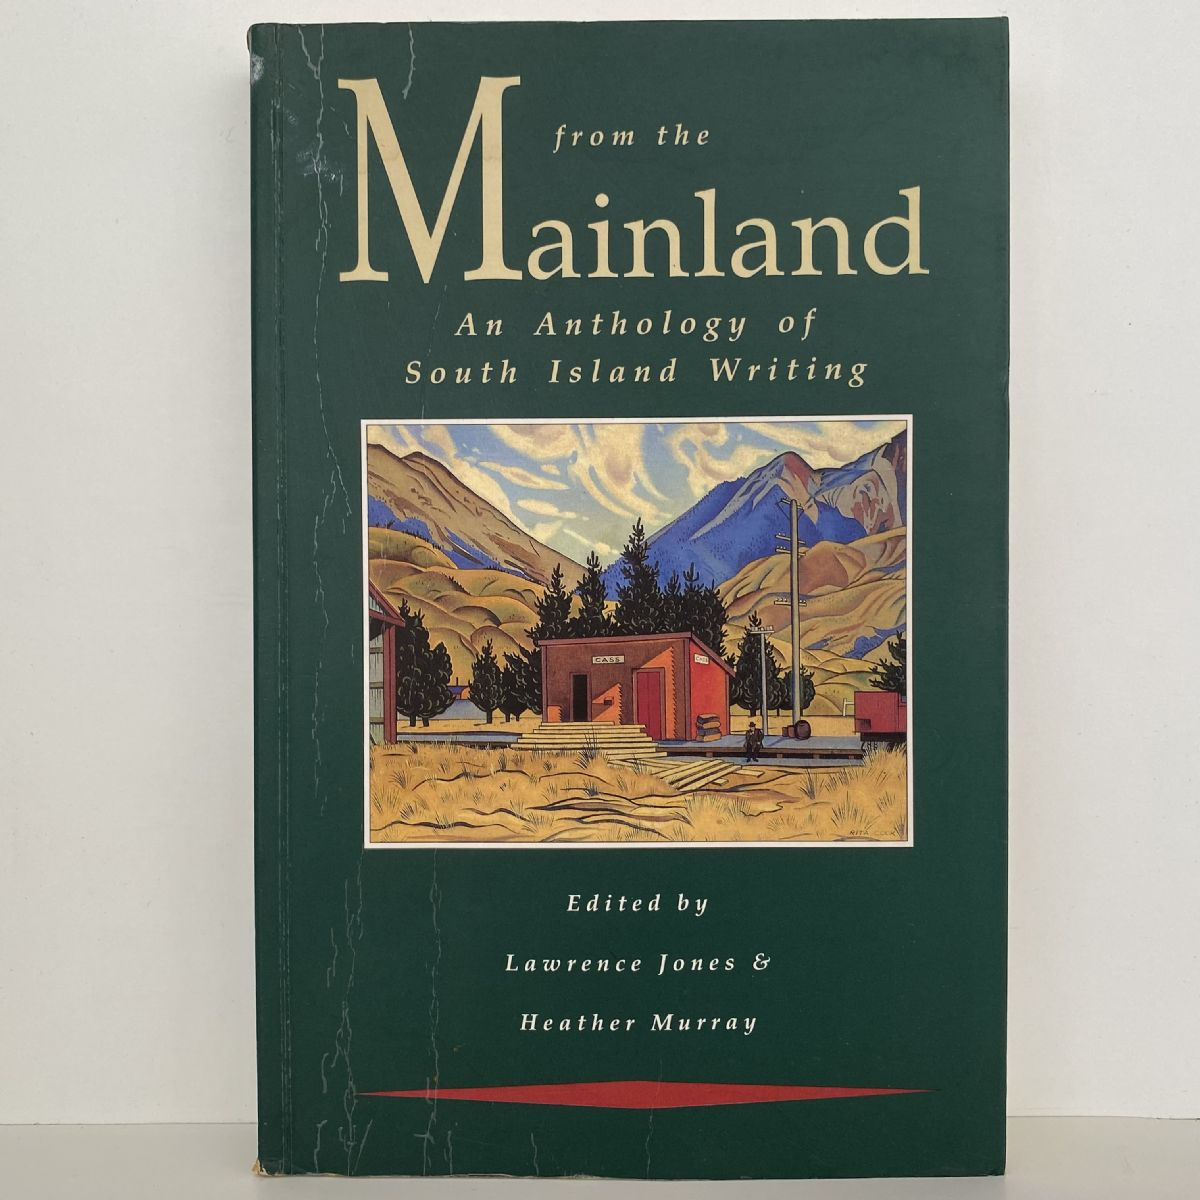 From The Mainland: An Anthology of South Island Writing